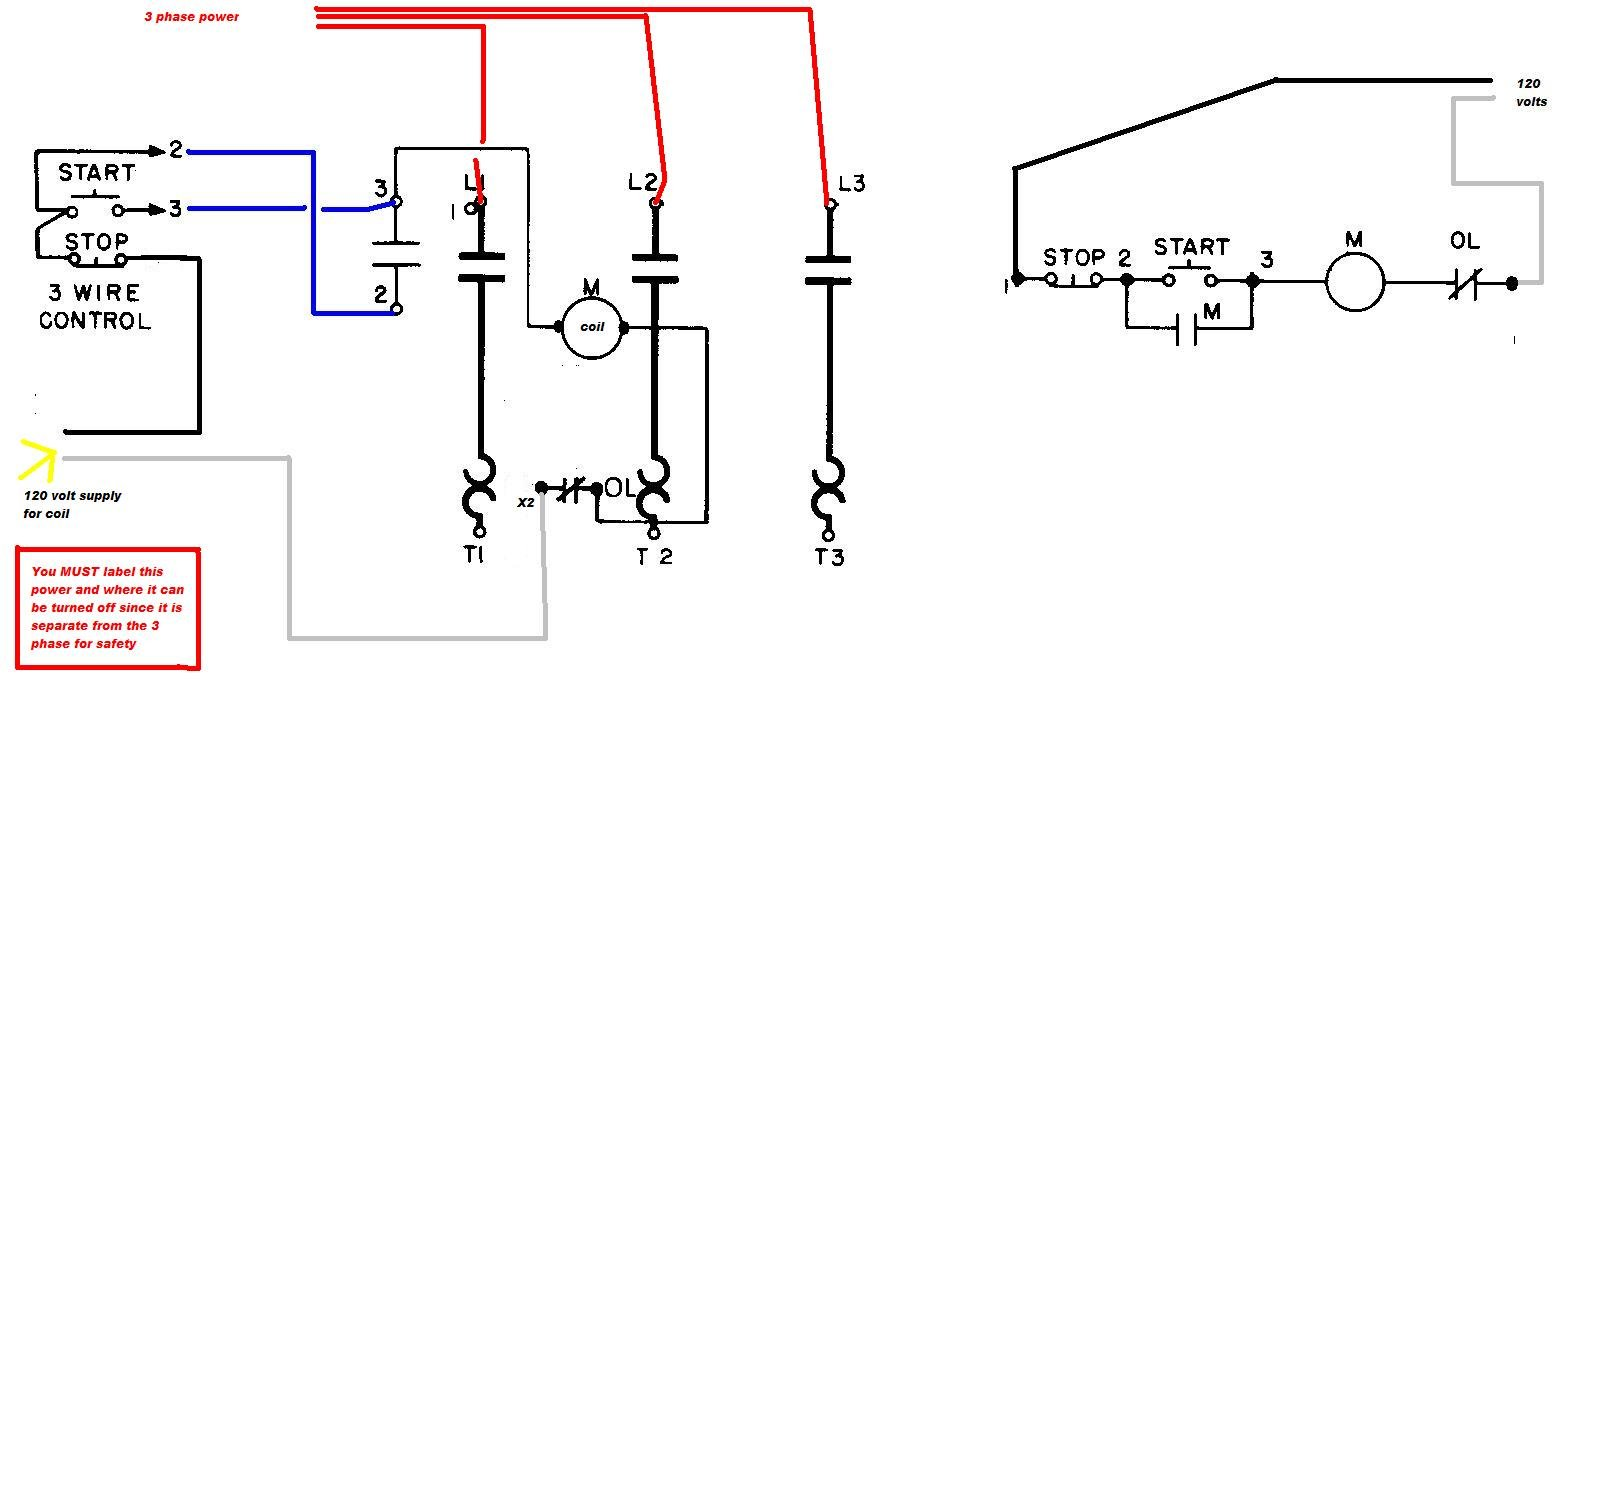 hight resolution of wiring diagram for a starter controlling a 480v motor with 120v start stop button